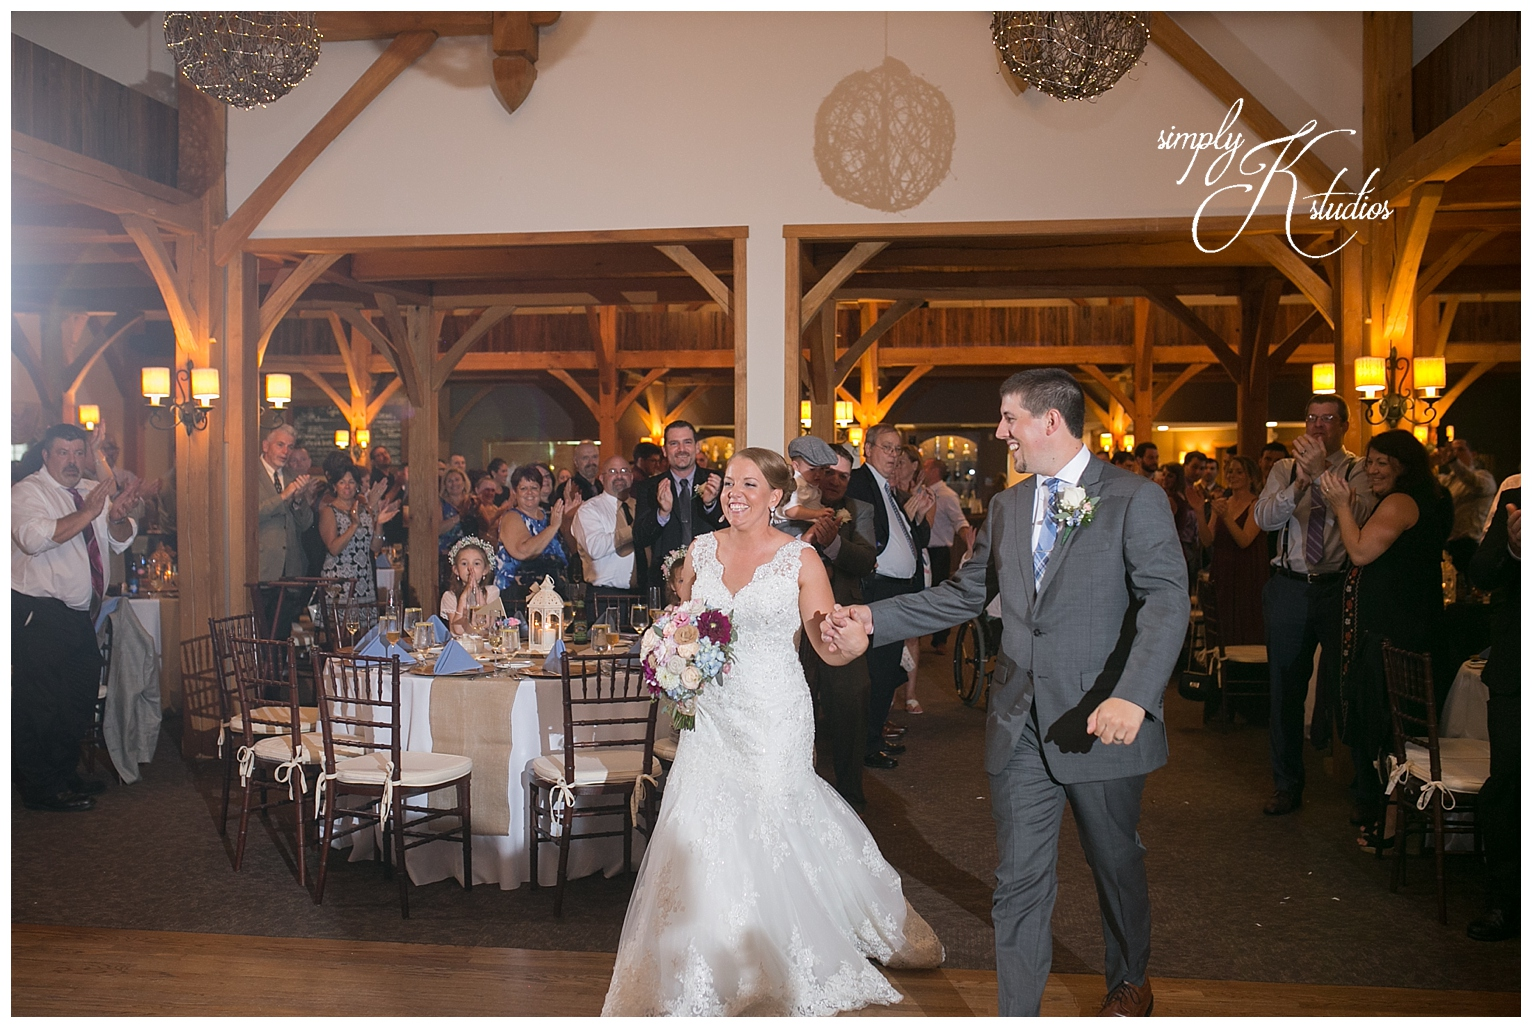 Harrington Farm Wedding Reception Photos.jpg